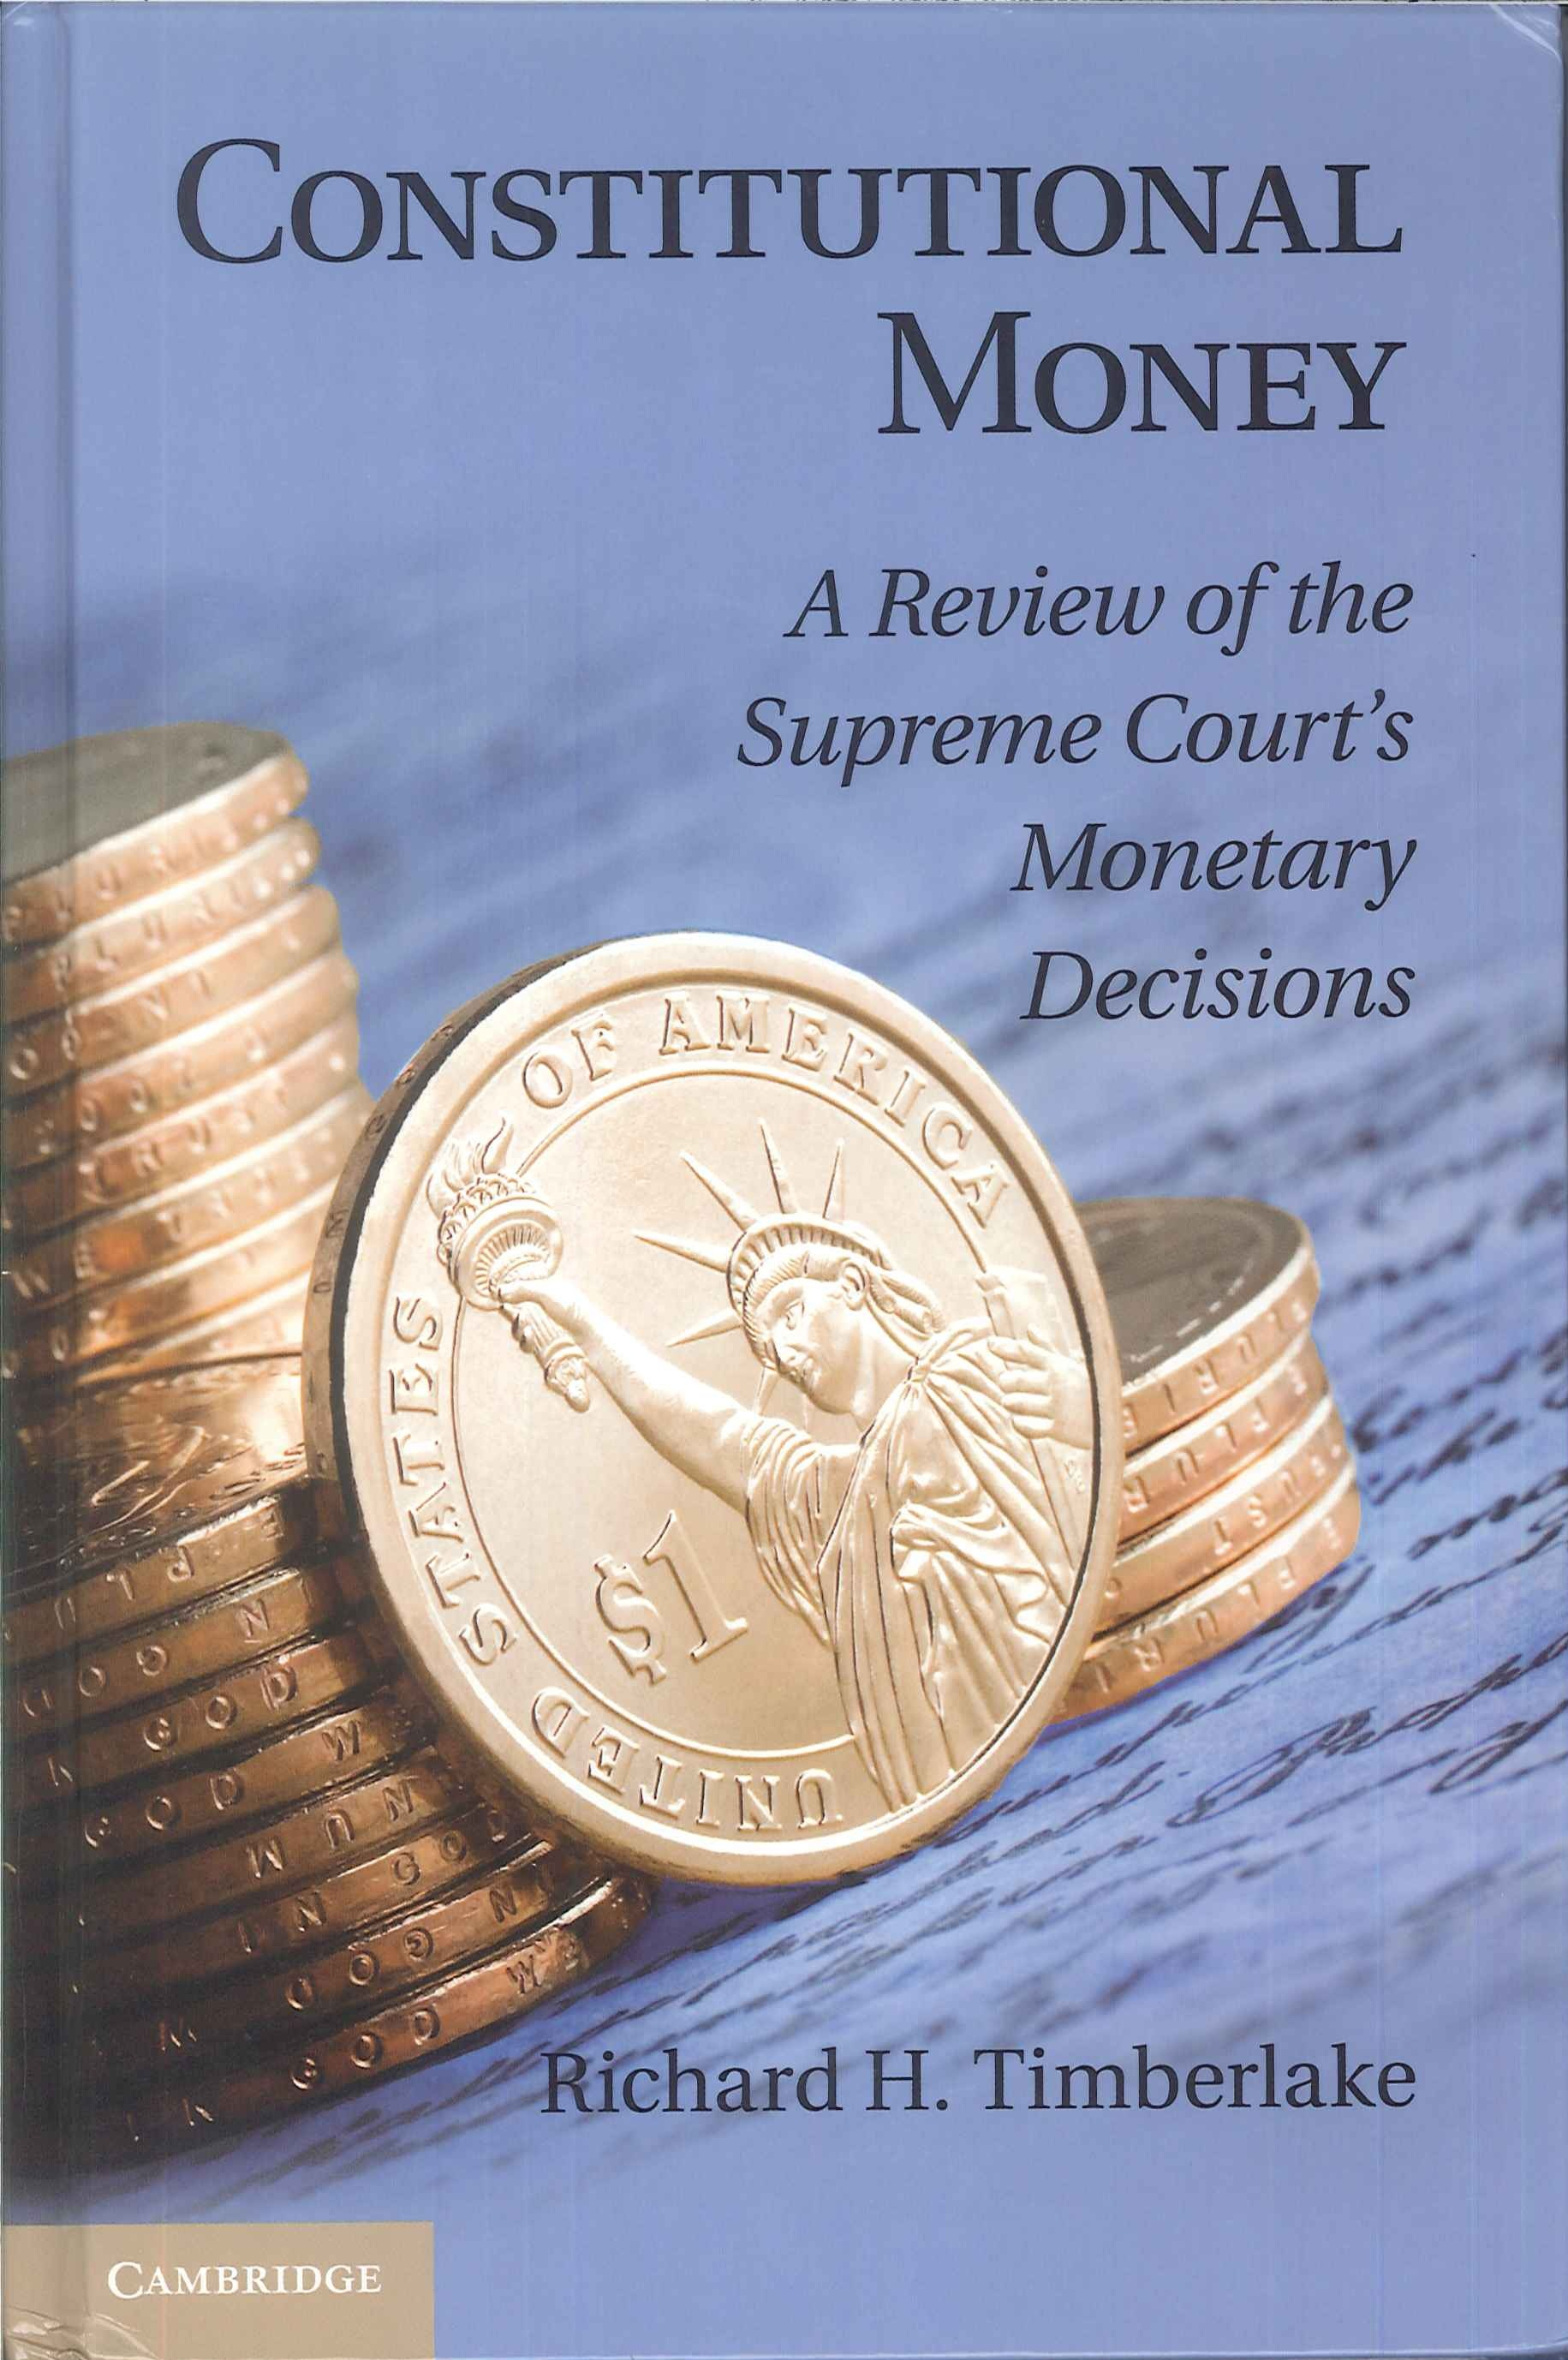 Constitutional money:a review of the Supreme Court